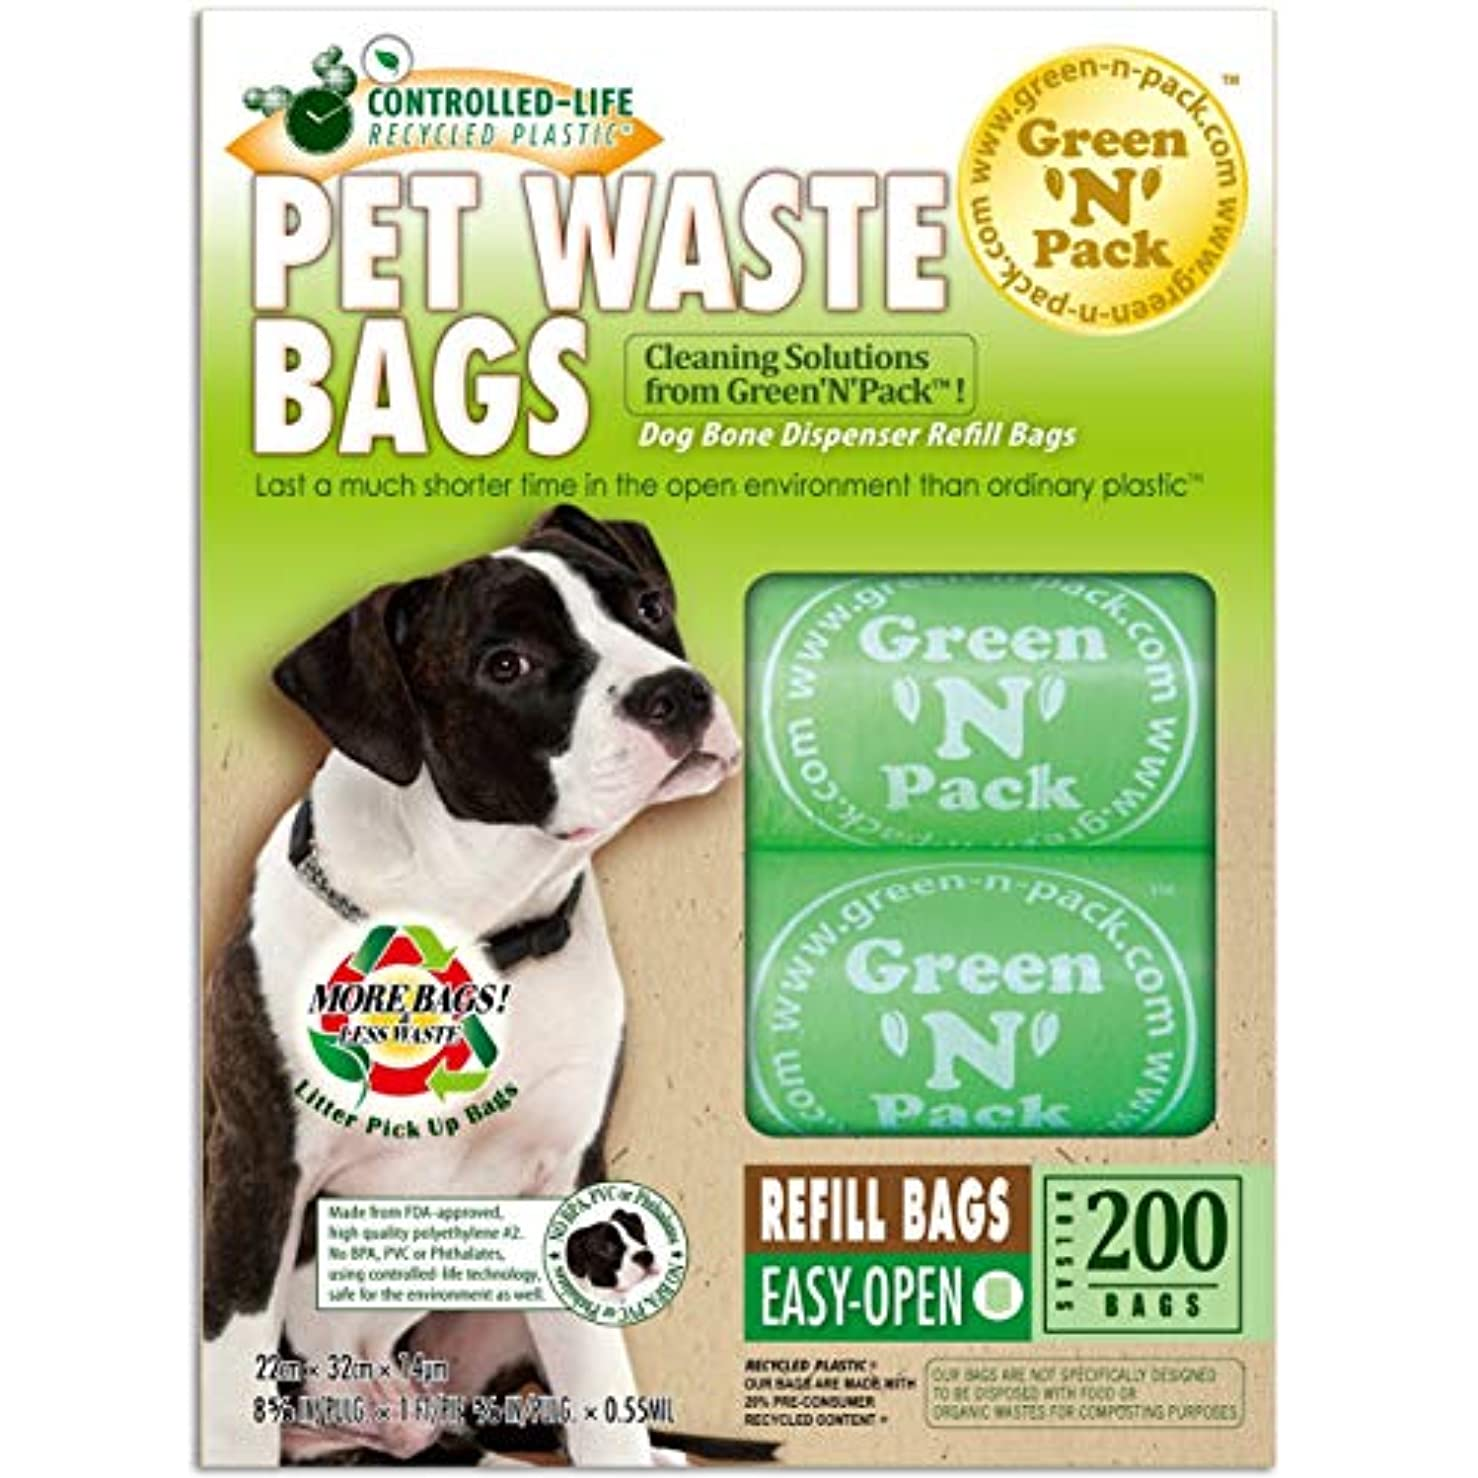 Green 'N' Pack Eco Friendly Bags - 犬Pooは日 75 パックを袋に入れる - 200バッグ